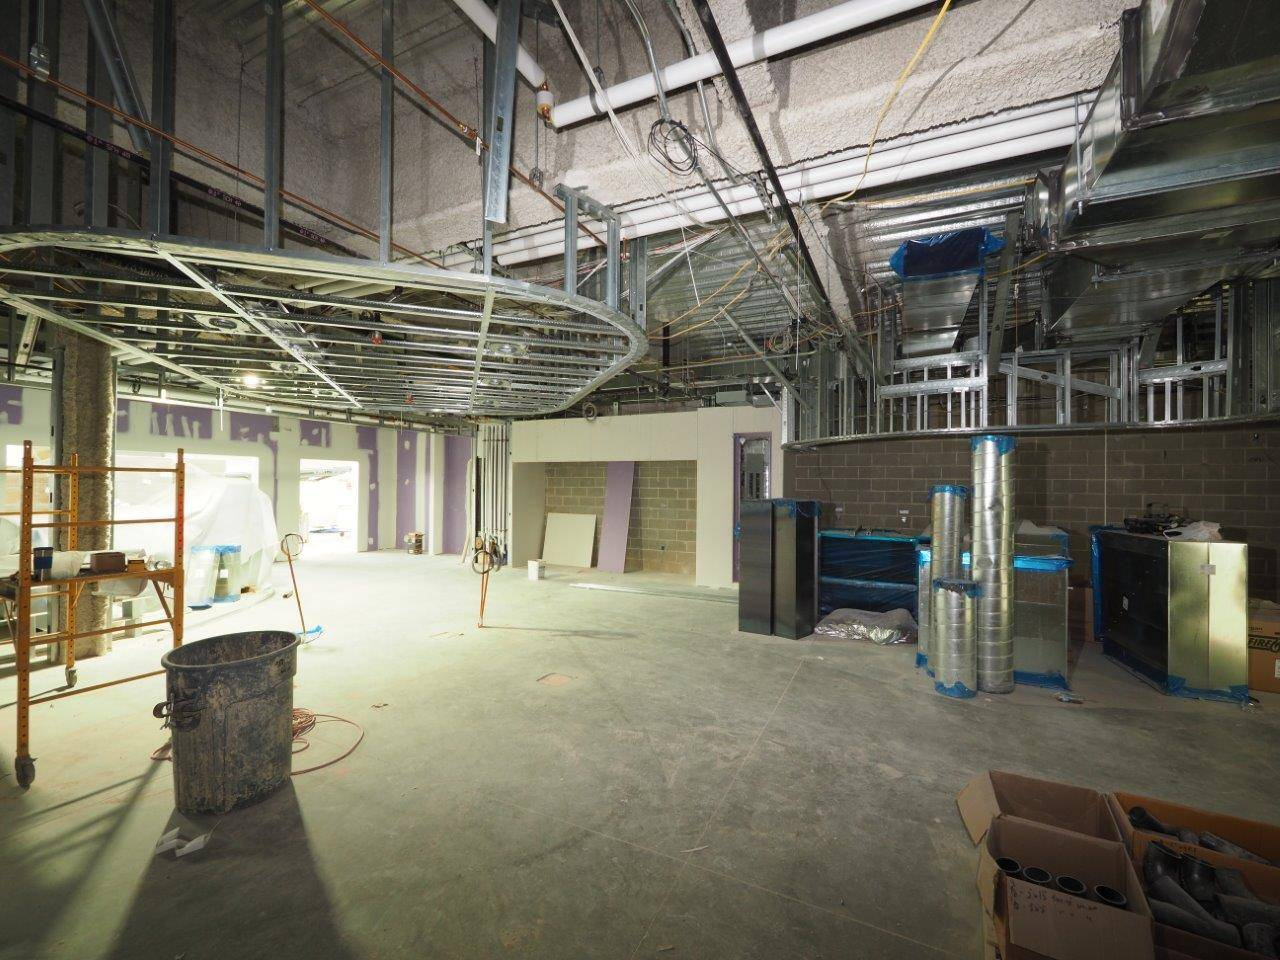 The servery area in the new high school